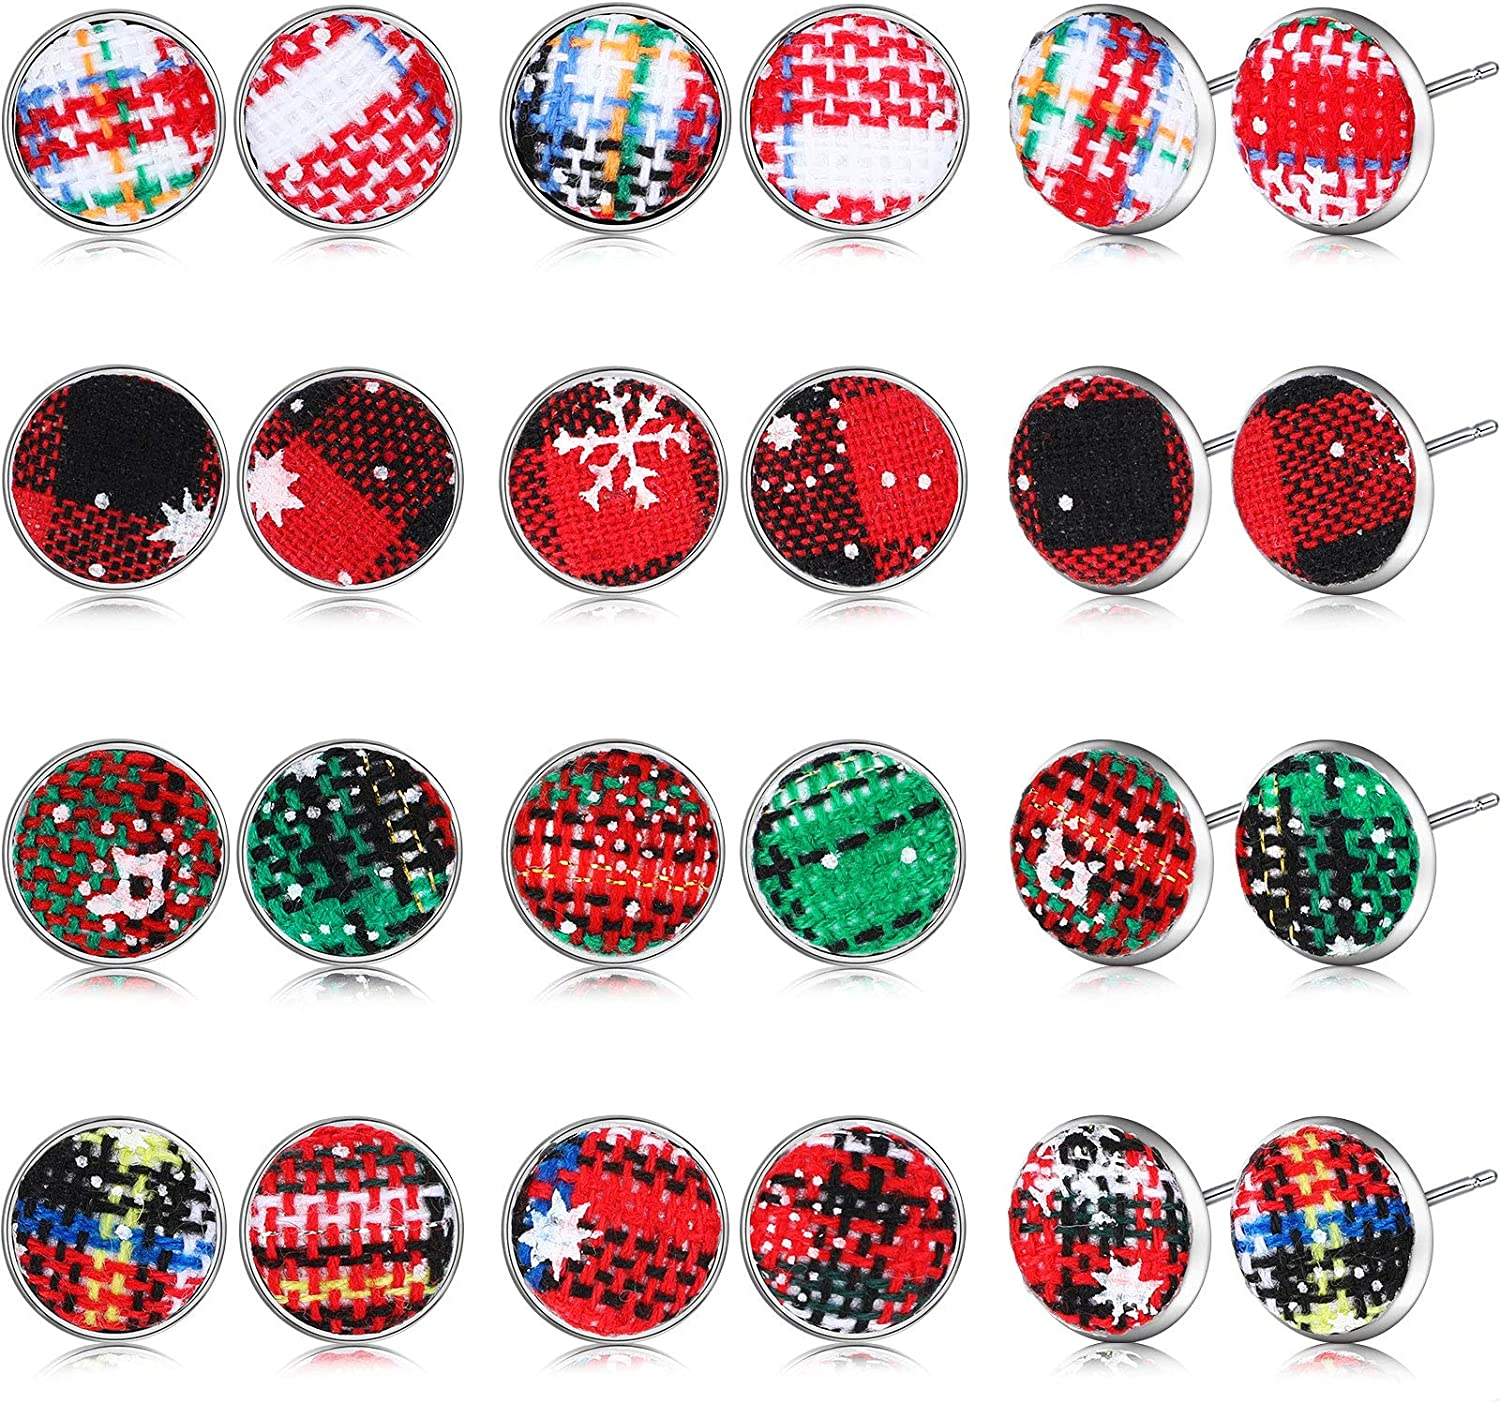 12 Pairs Christmas Snowflake Plaid Fabric Button Earrings Studs Jewelry Set for Women Girls Teens Holiday Party Decor, 24 Pieces in Total